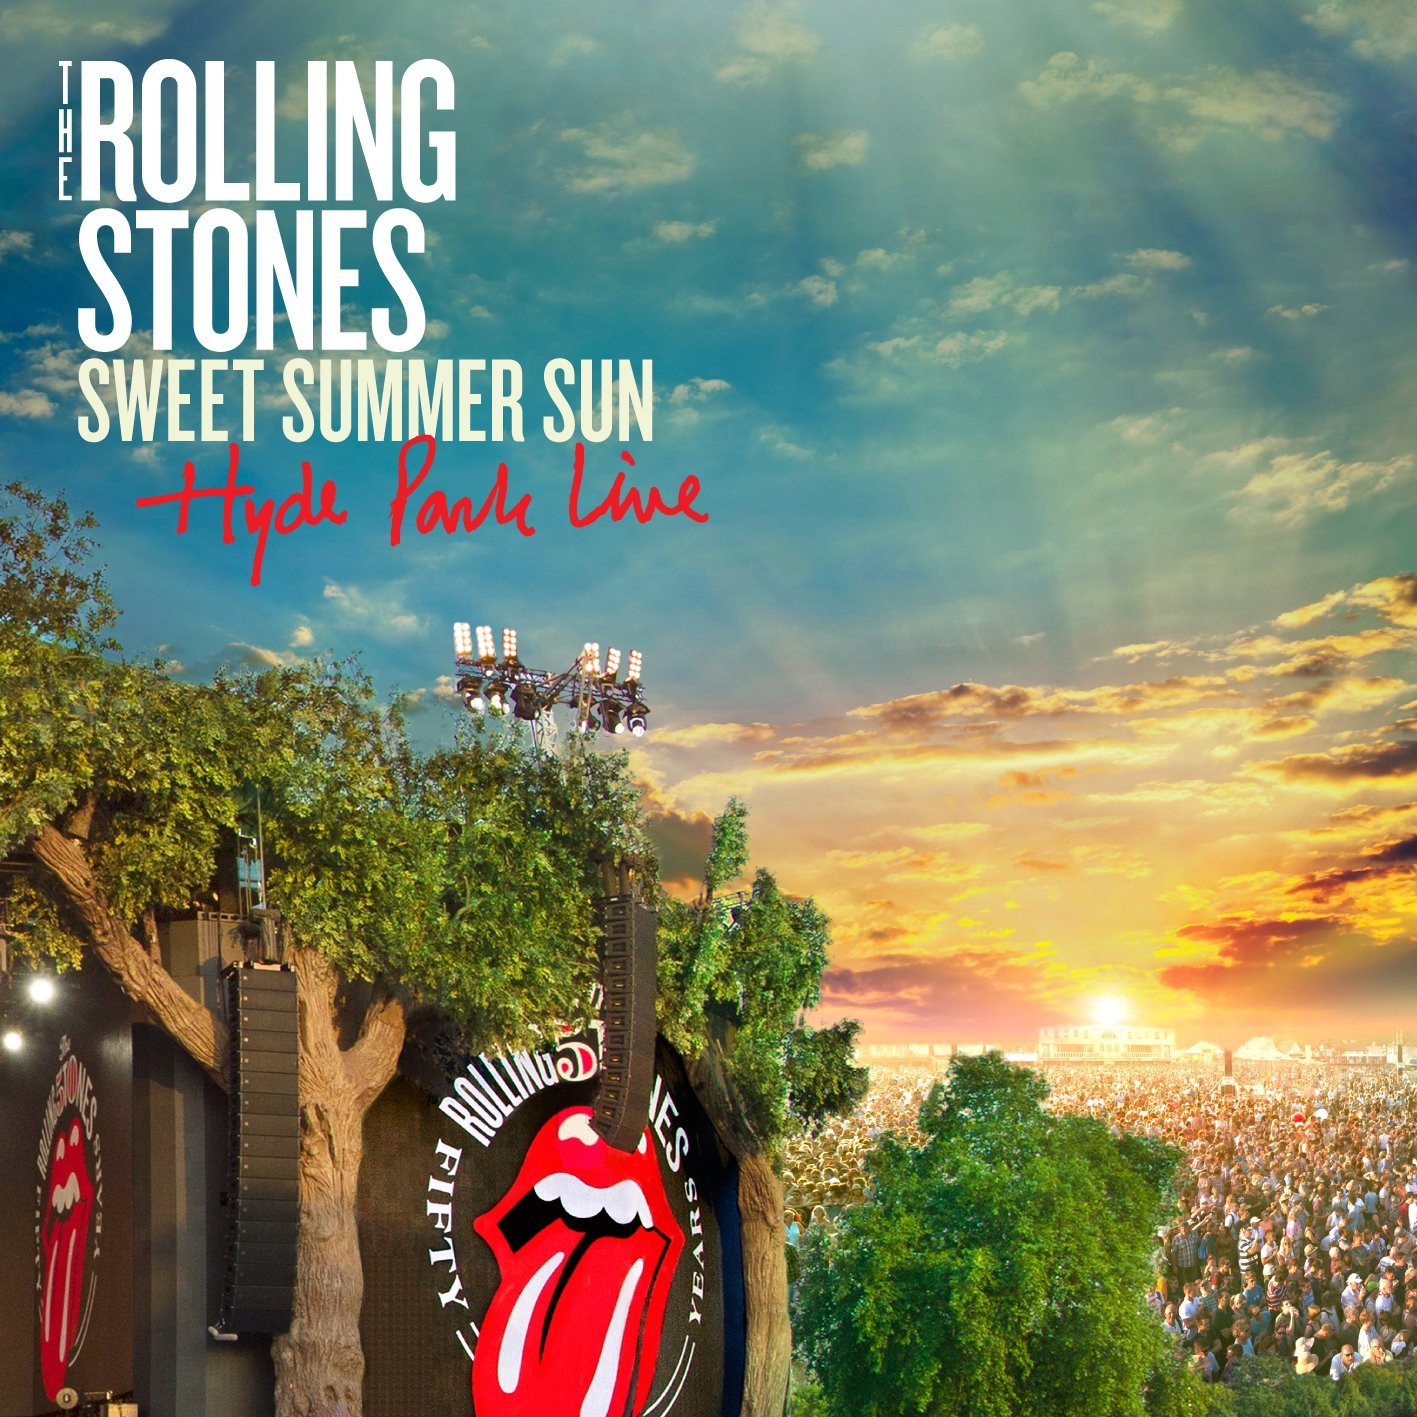 rolling stone sweet summer sun hyde park live